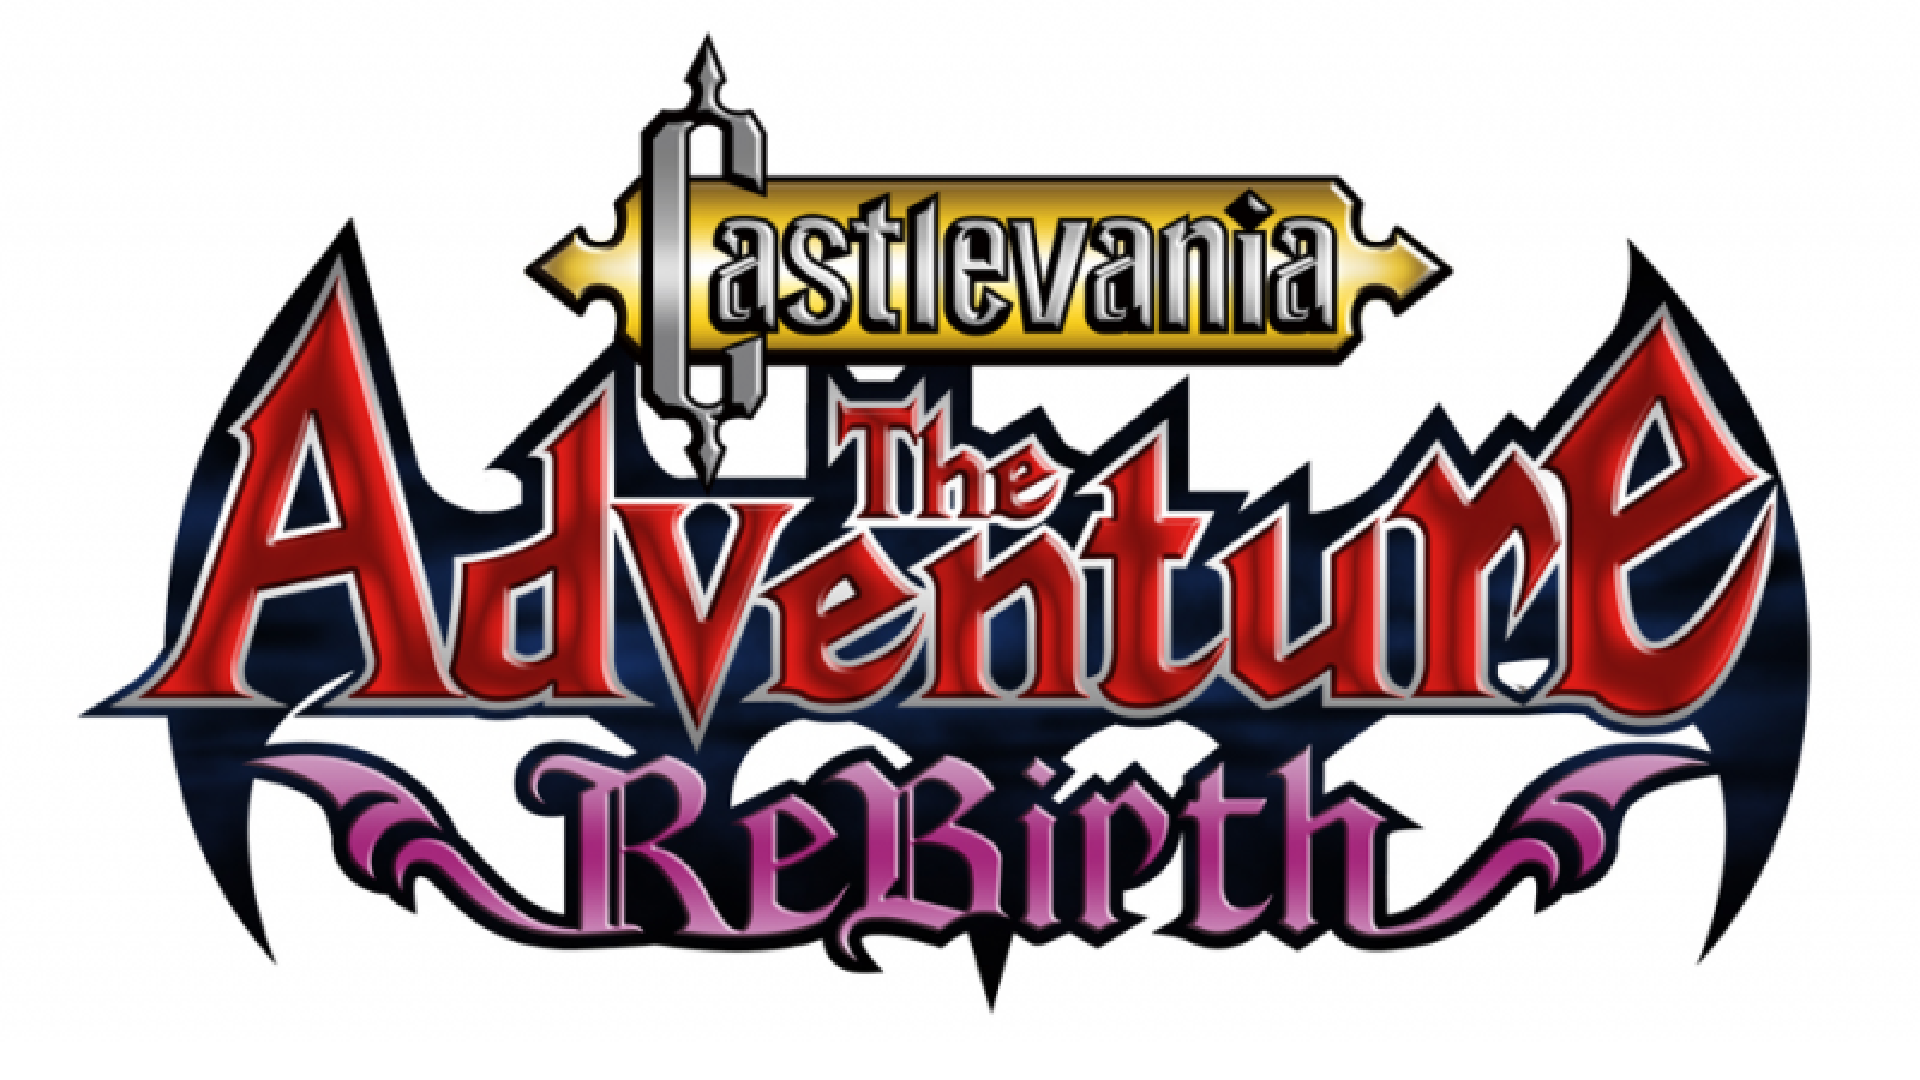 Castlevania: The Adventure ReBirth Logo